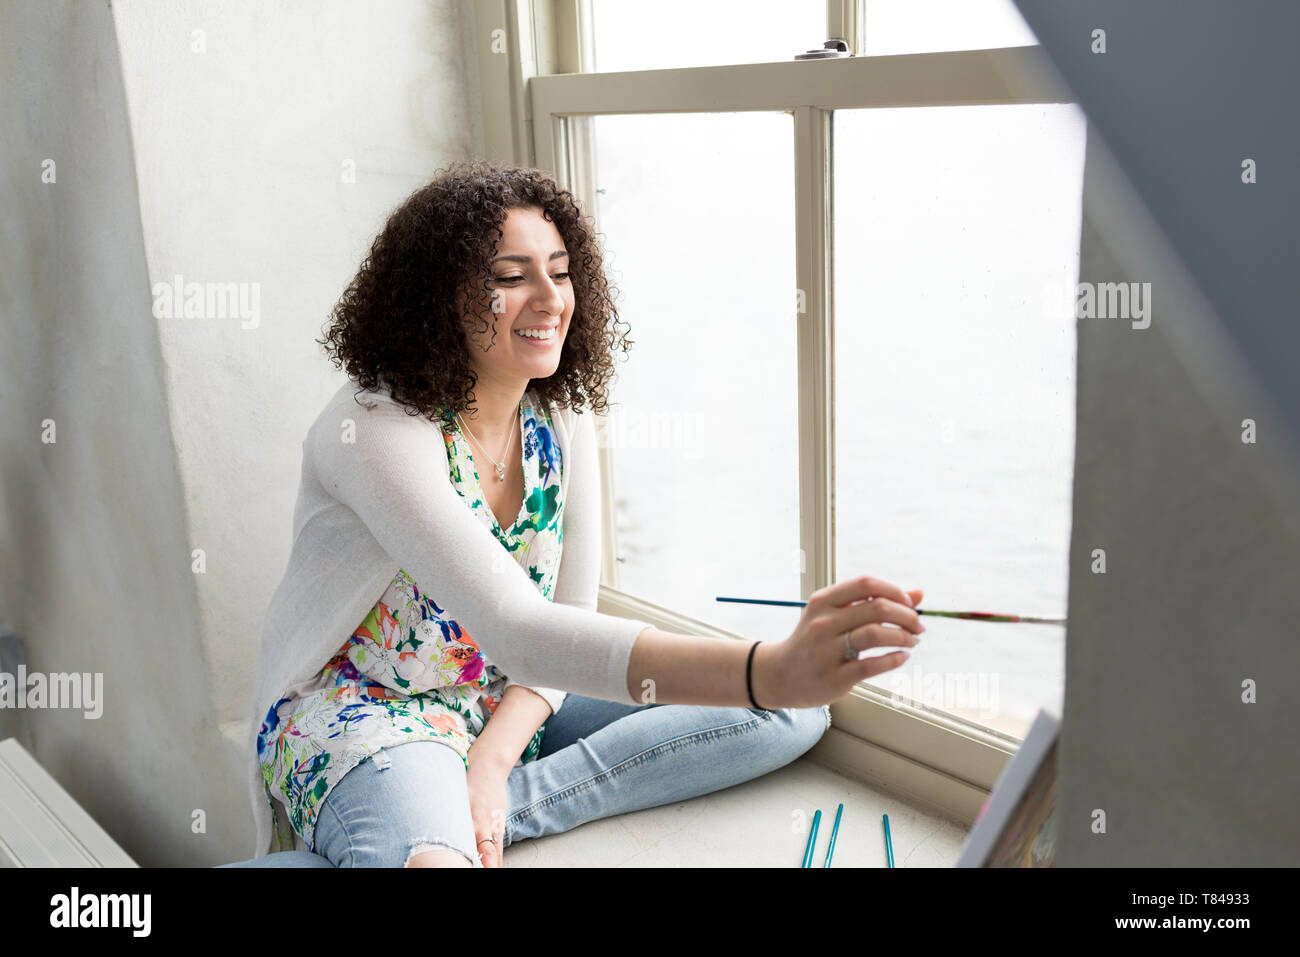 Young female painter painting canvas on studio windowsill - Stock Image